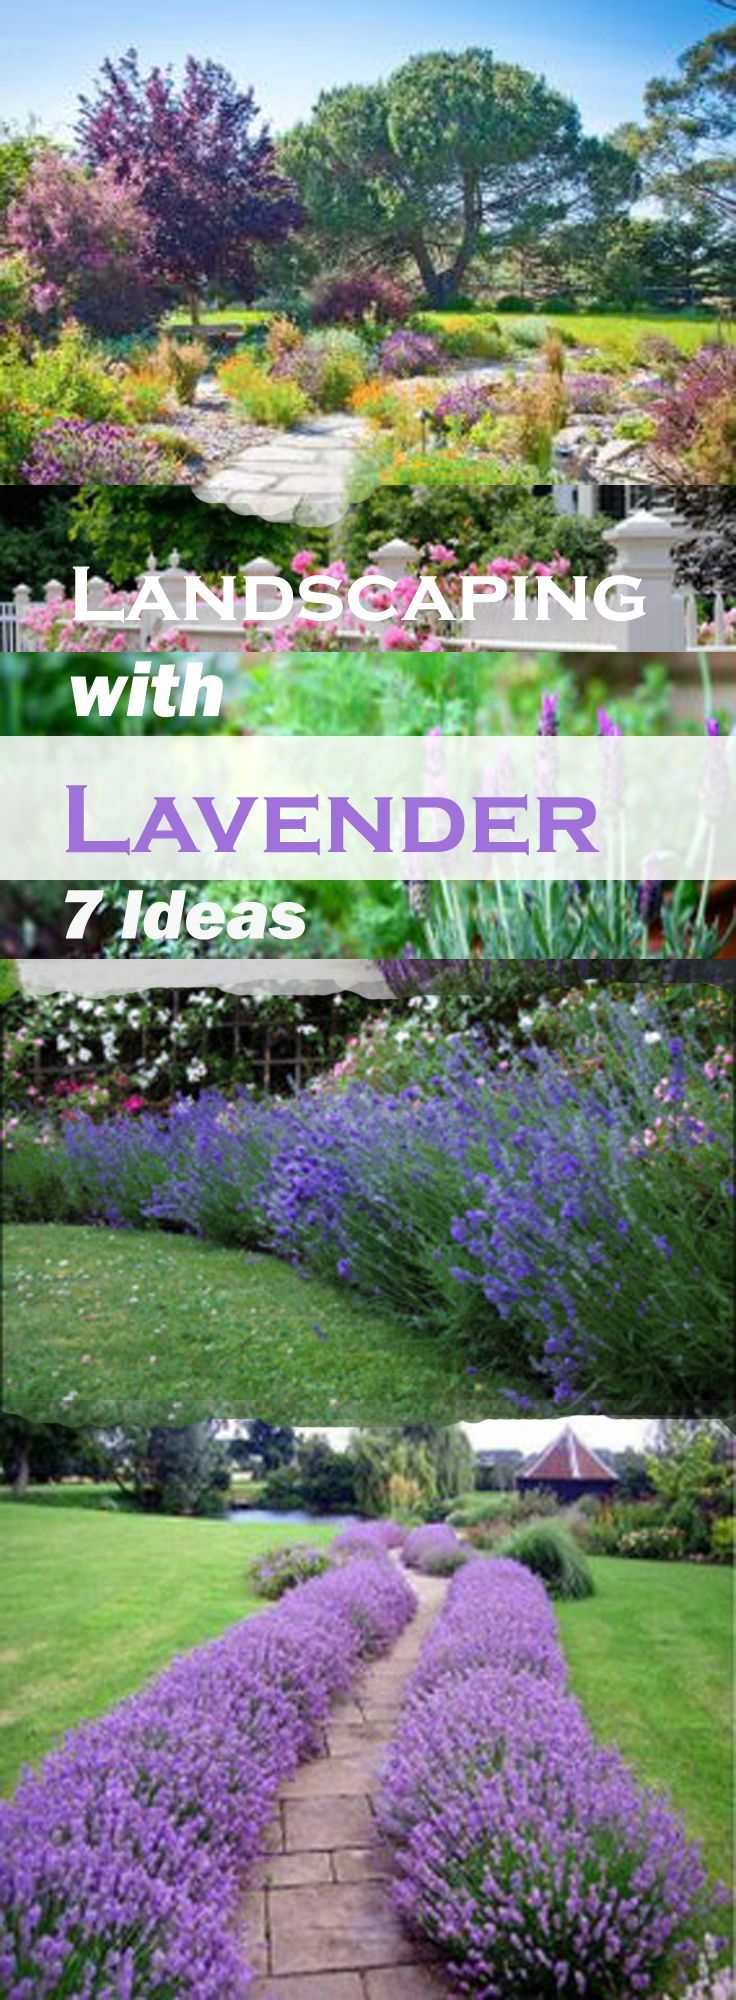 Home Landscaping Ideas best 25+ home landscaping ideas on pinterest | landscape design